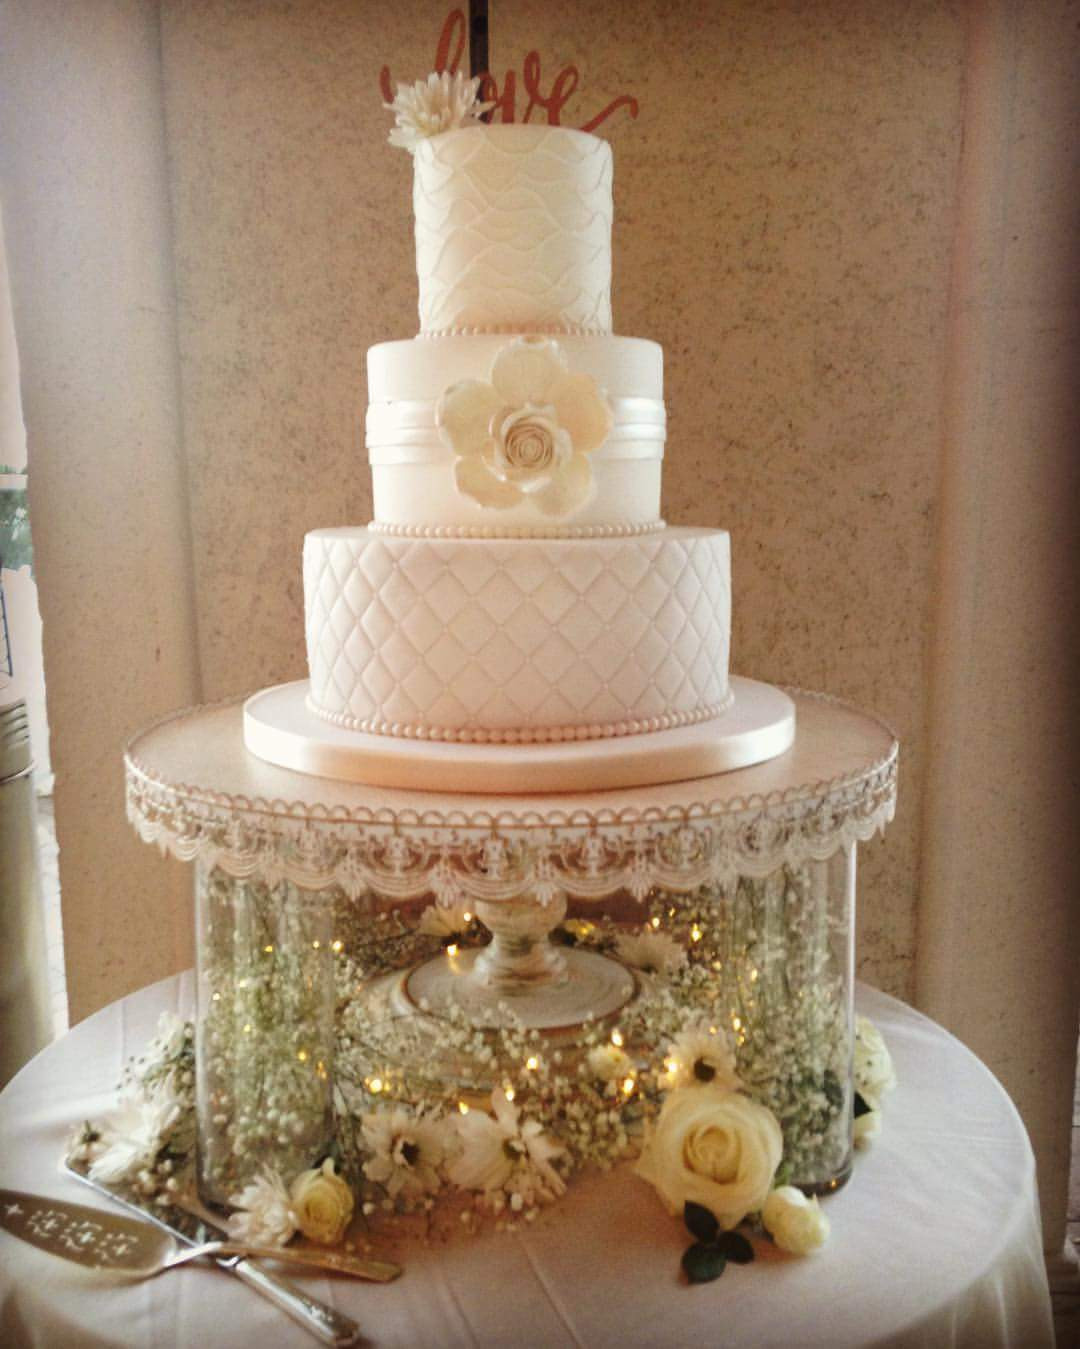 Wedding Cakes Stands  65 Irresistible Wedding Cake Stands To Swear